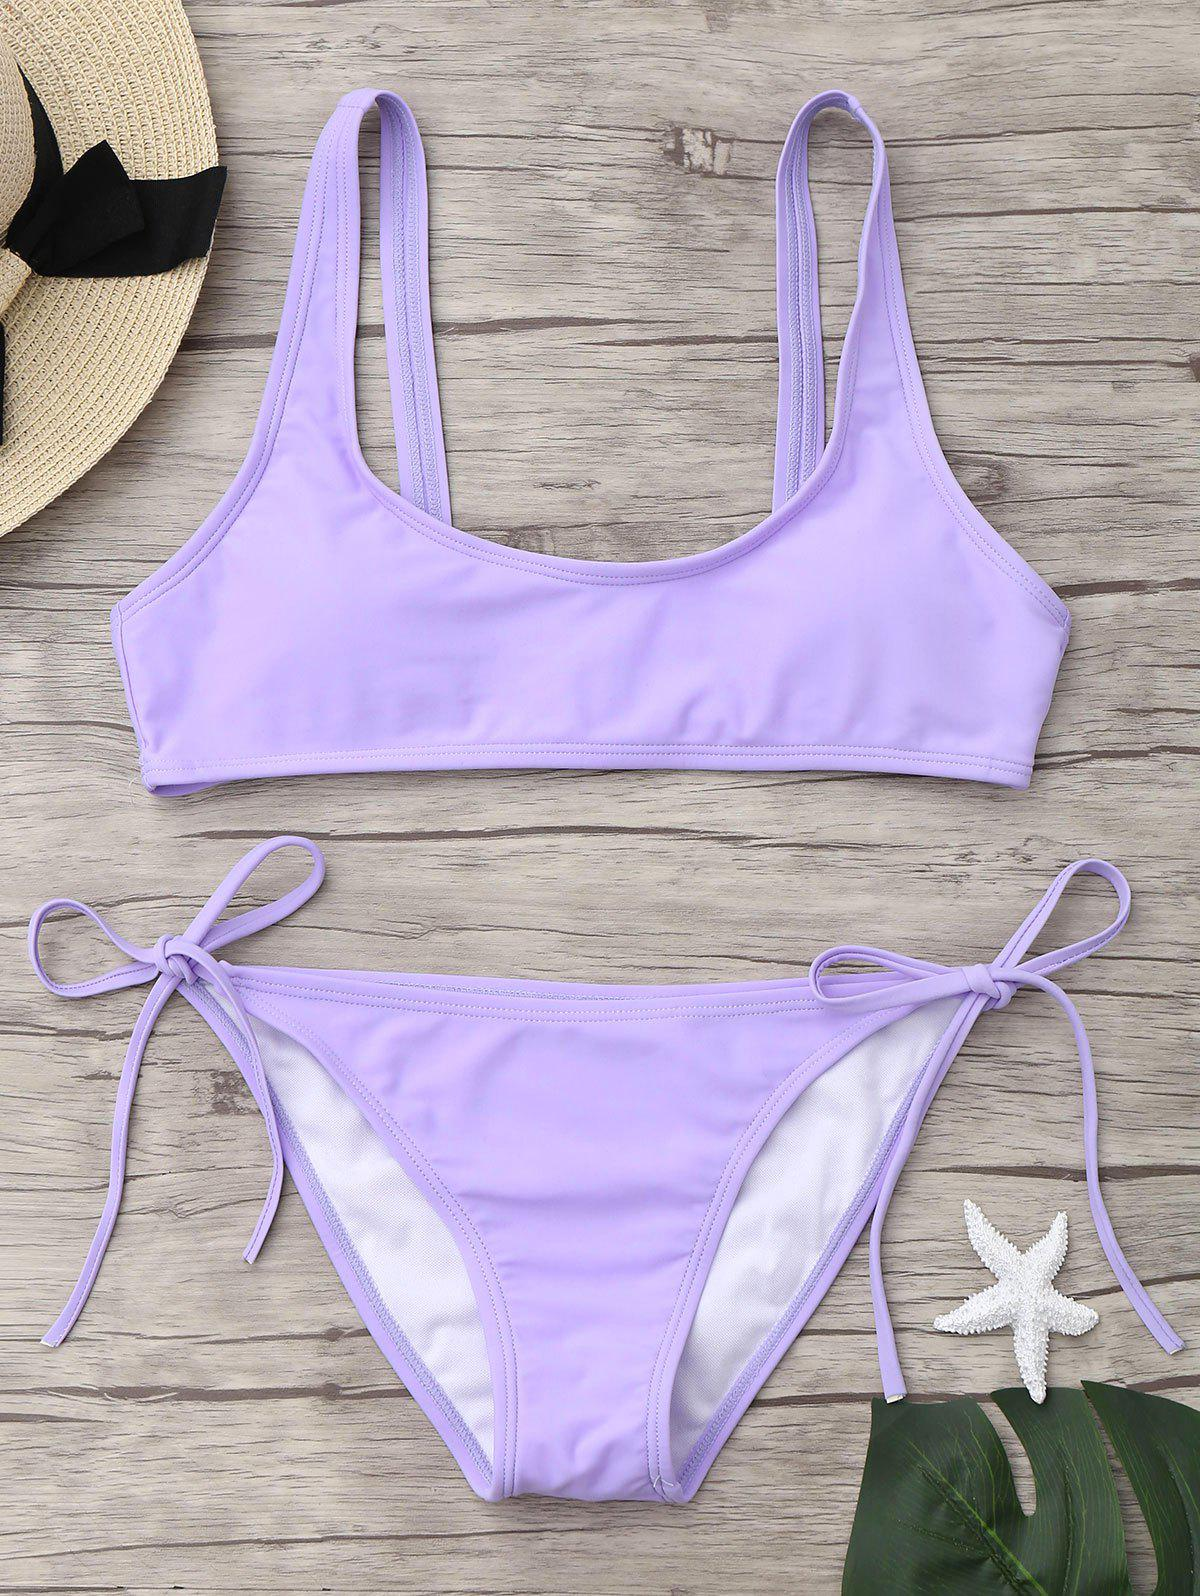 U Neck Tie Side Bikini SwimwearWOMEN<br><br>Size: M; Color: LIGHT PURPLE; Swimwear Type: Bikini; Gender: For Women; Material: Nylon,Spandex; Bra Style: Padded; Support Type: Wire Free; Neckline: U Neck; Pattern Type: Solid Color; Waist: Low Waisted; Elasticity: Elastic; Weight: 0.2700kg; Package Contents: 1 x Bra  1 x Panties;